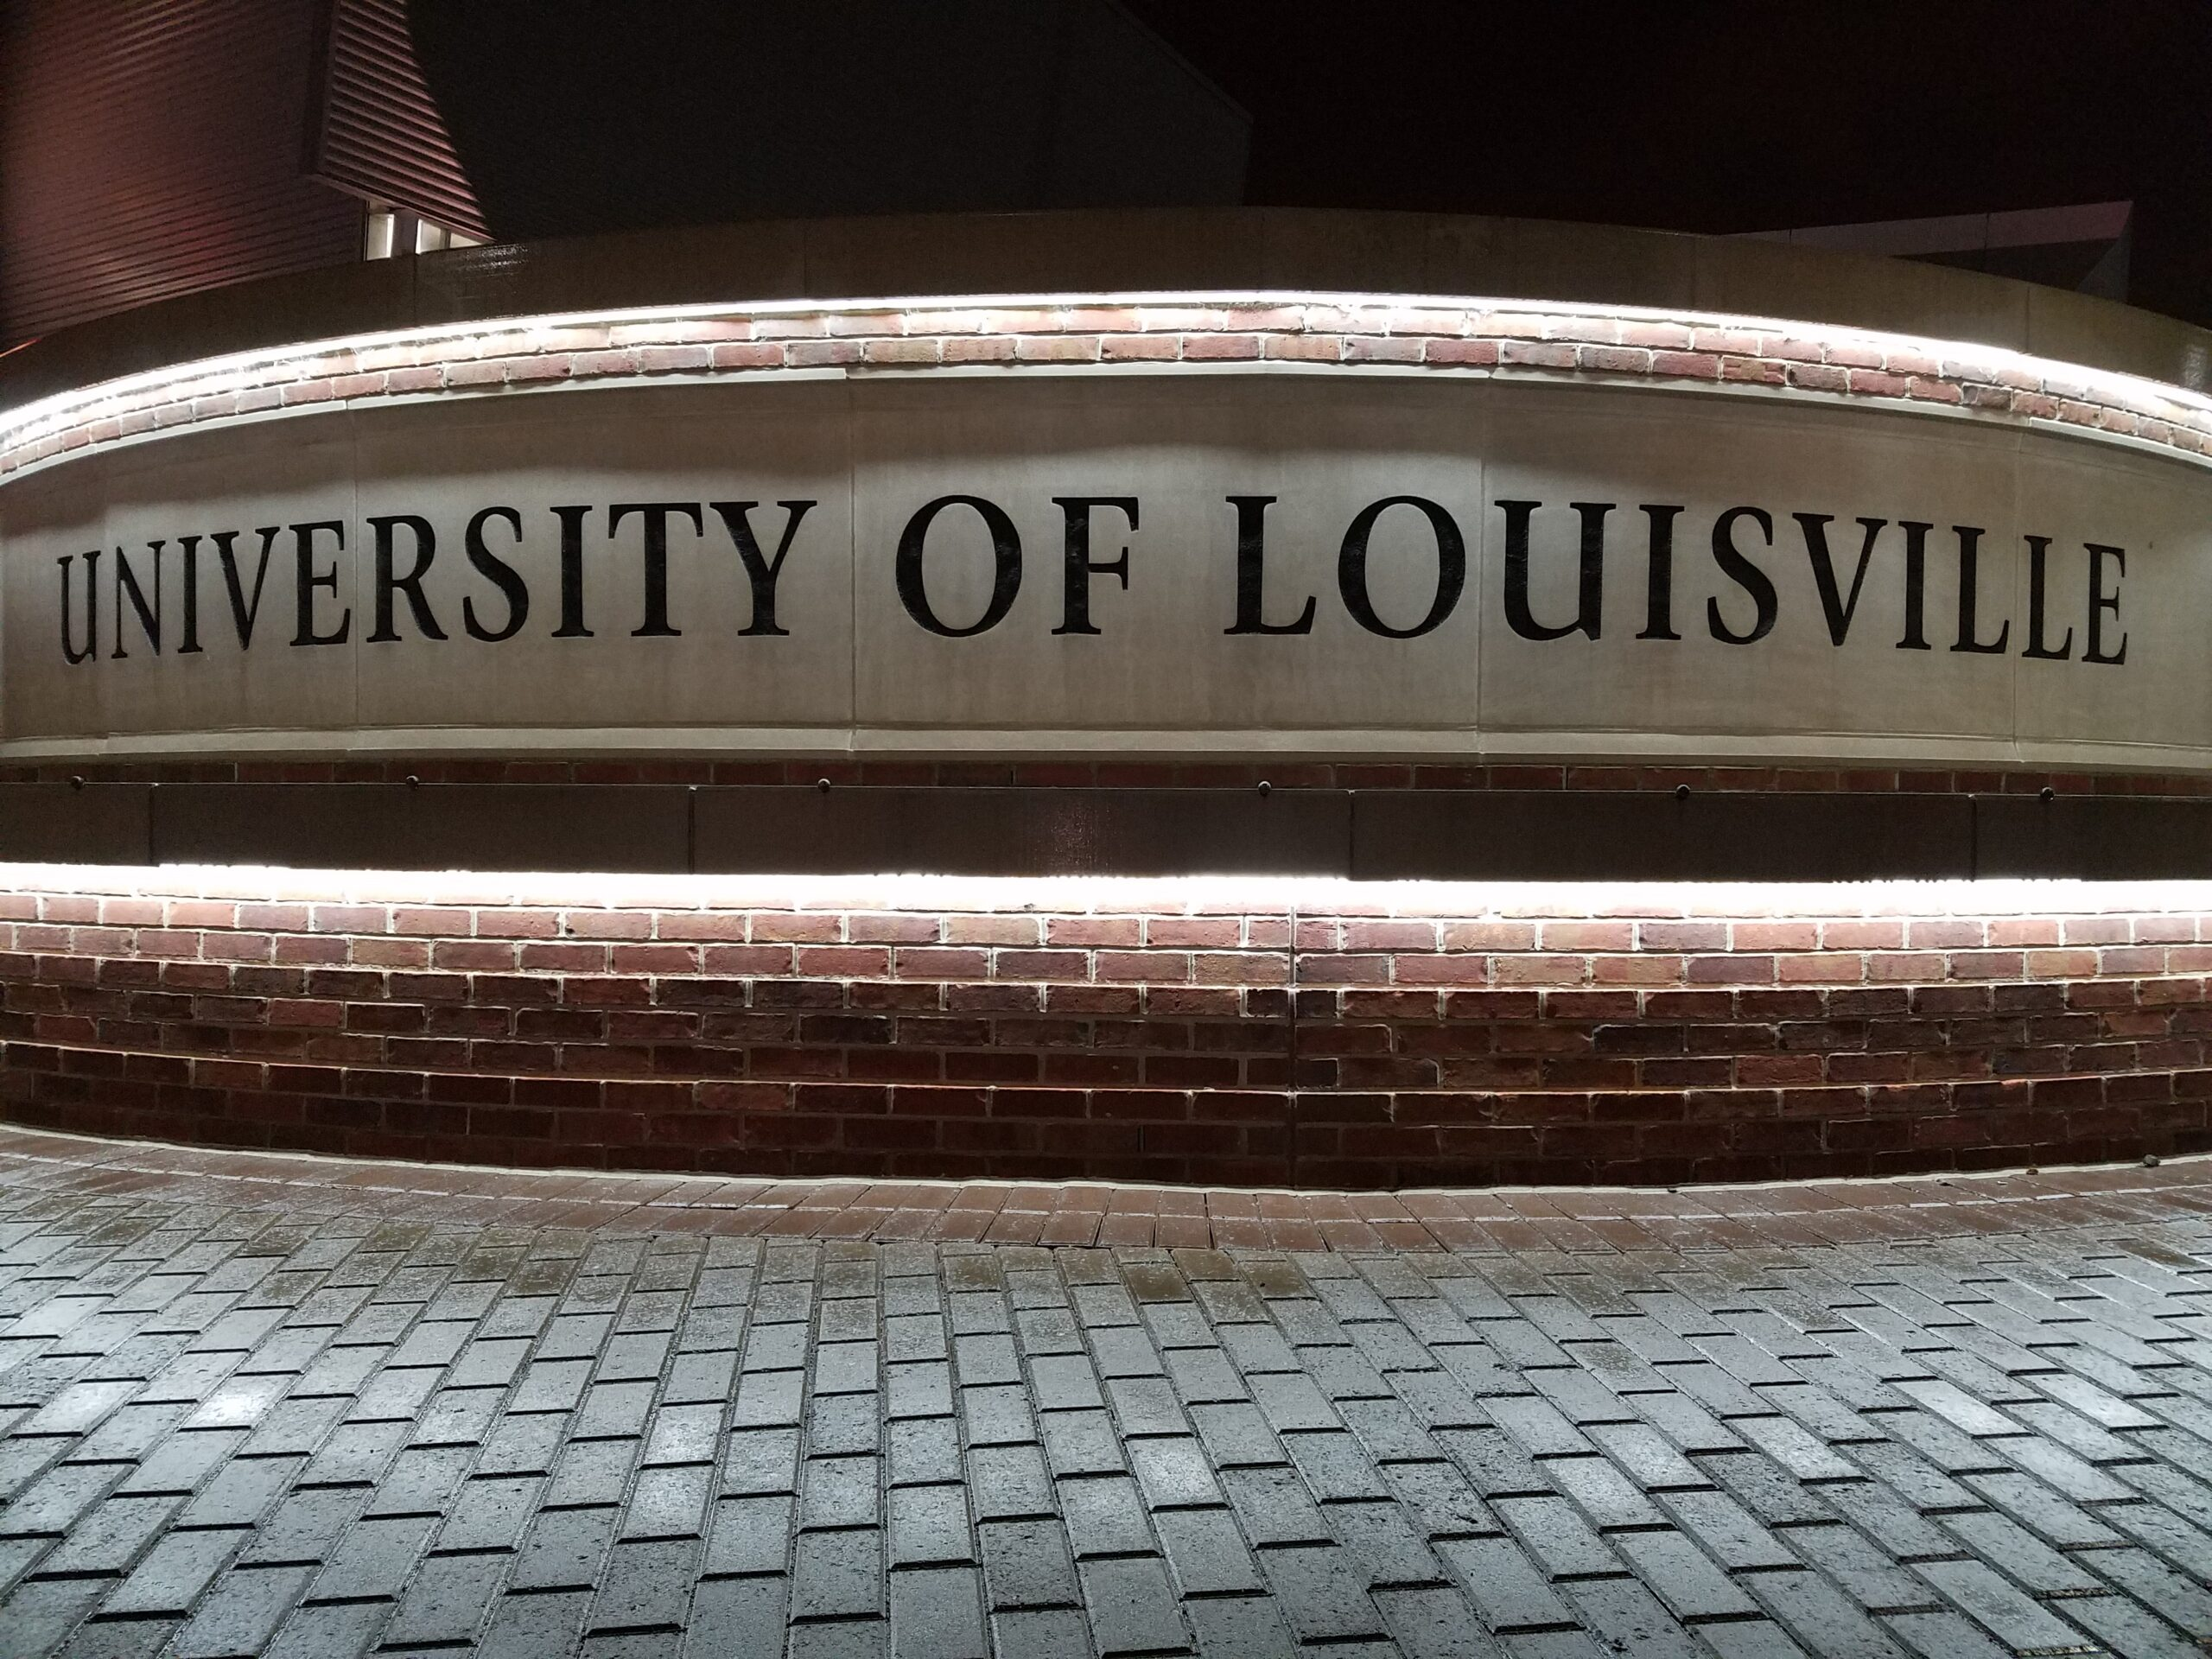 University of Louisville, U of L, grawemeyer, university